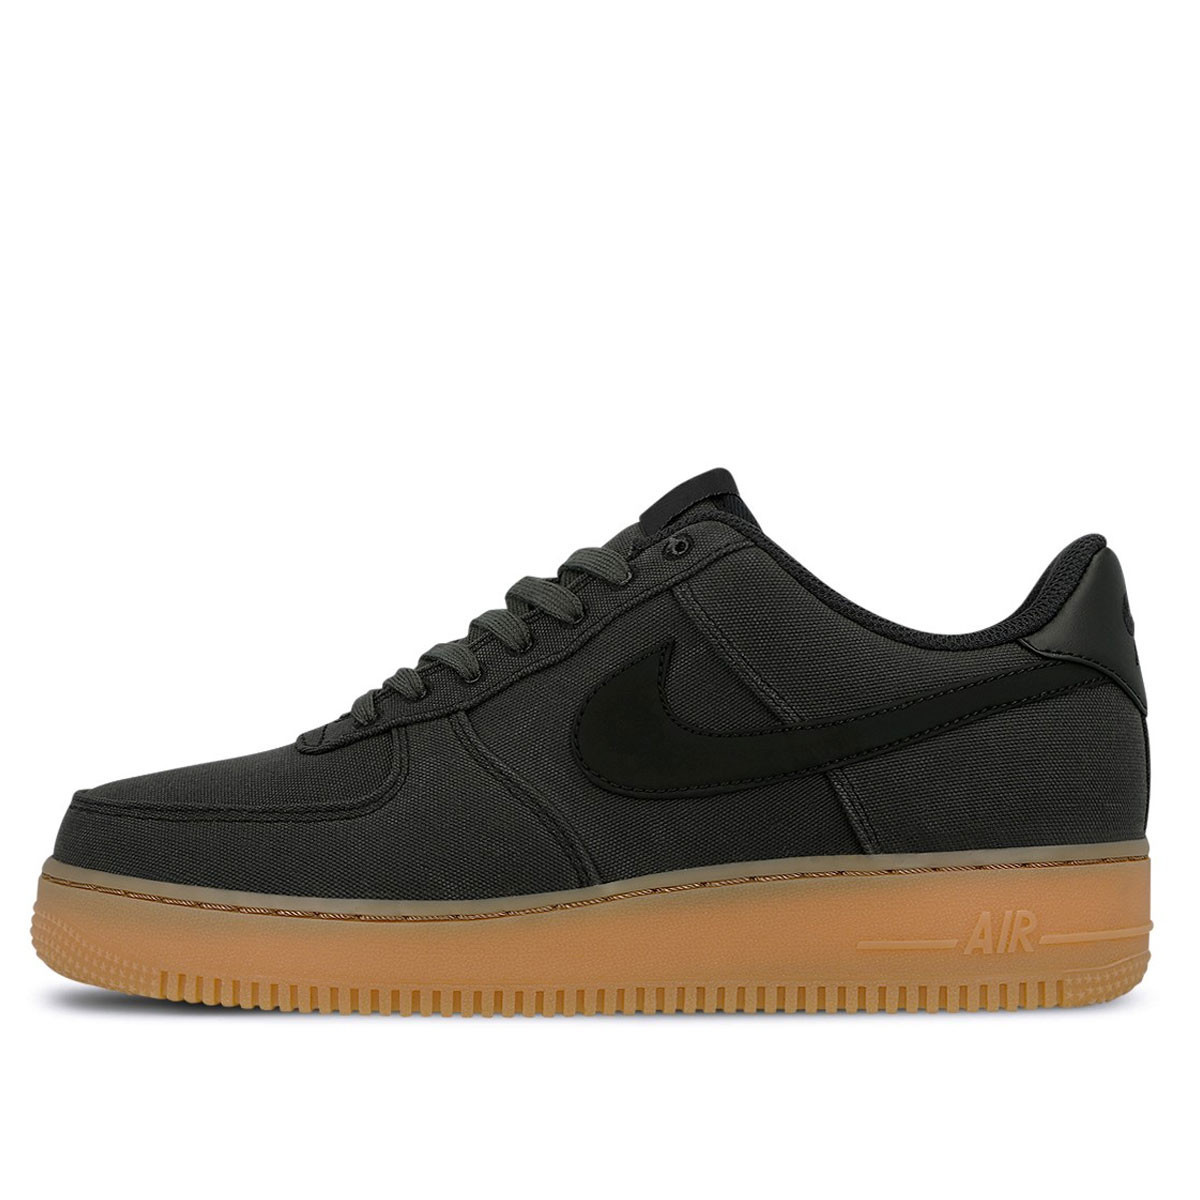 Basket Nike AIR FORCE 1 '07 LV8 STYLE DownTownStock.Com